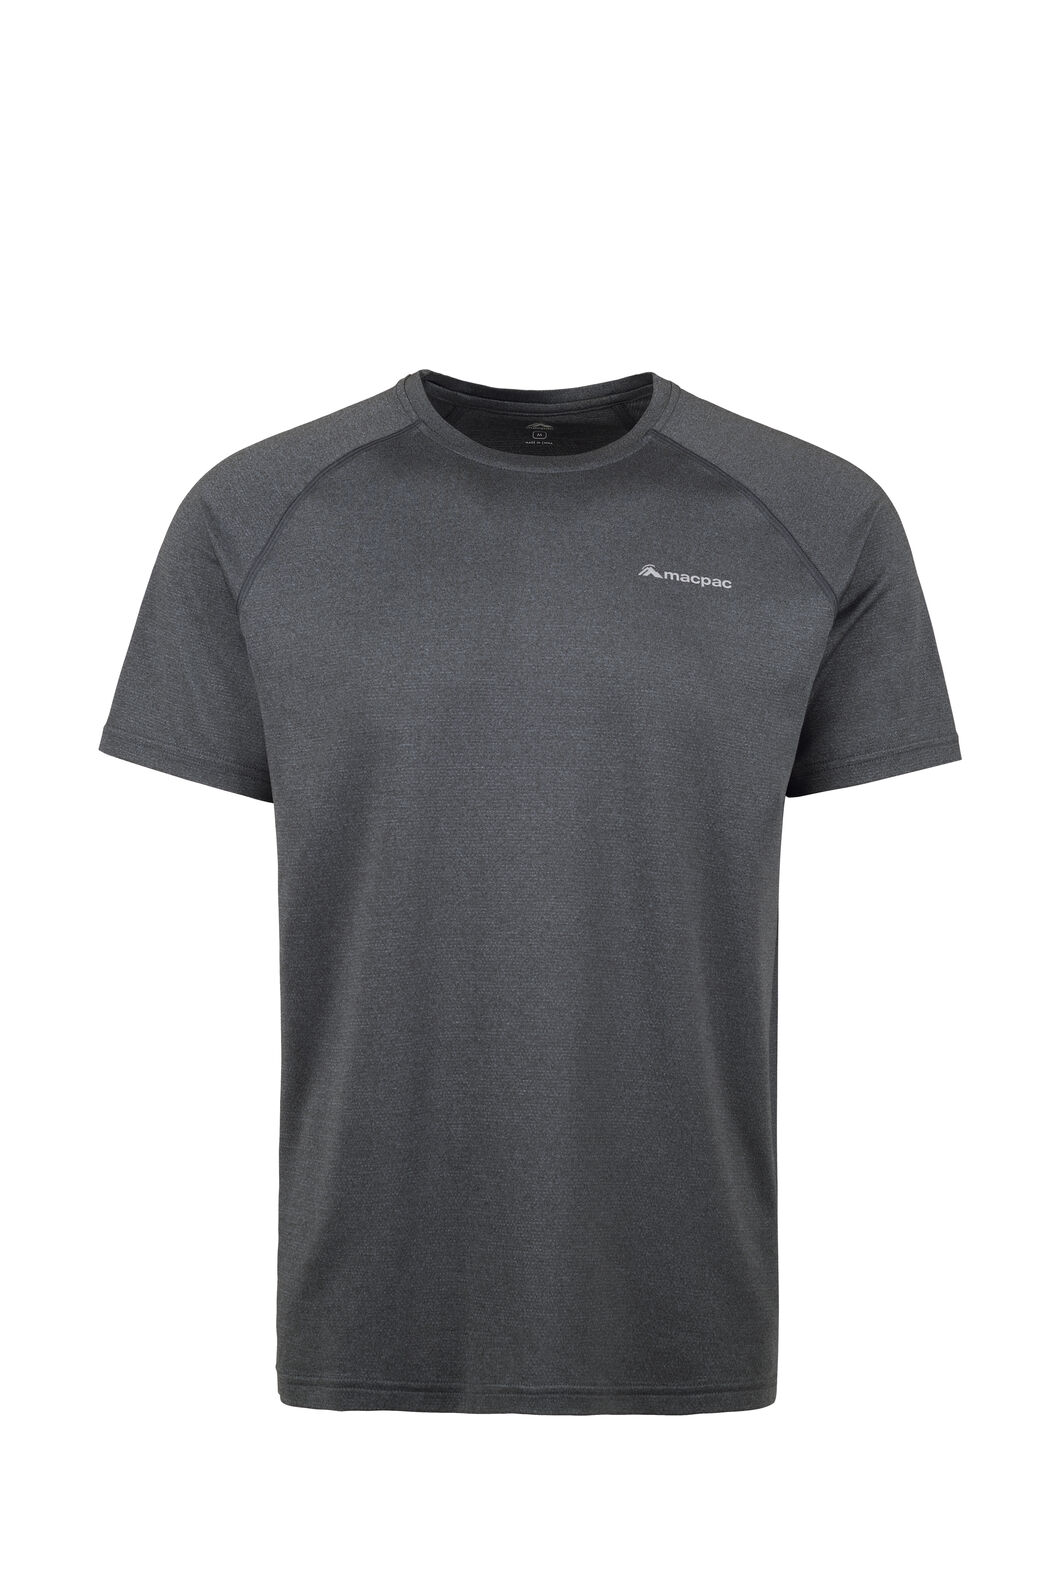 Macpac Eyre Short Sleeve Tee — Men's, Black, hi-res